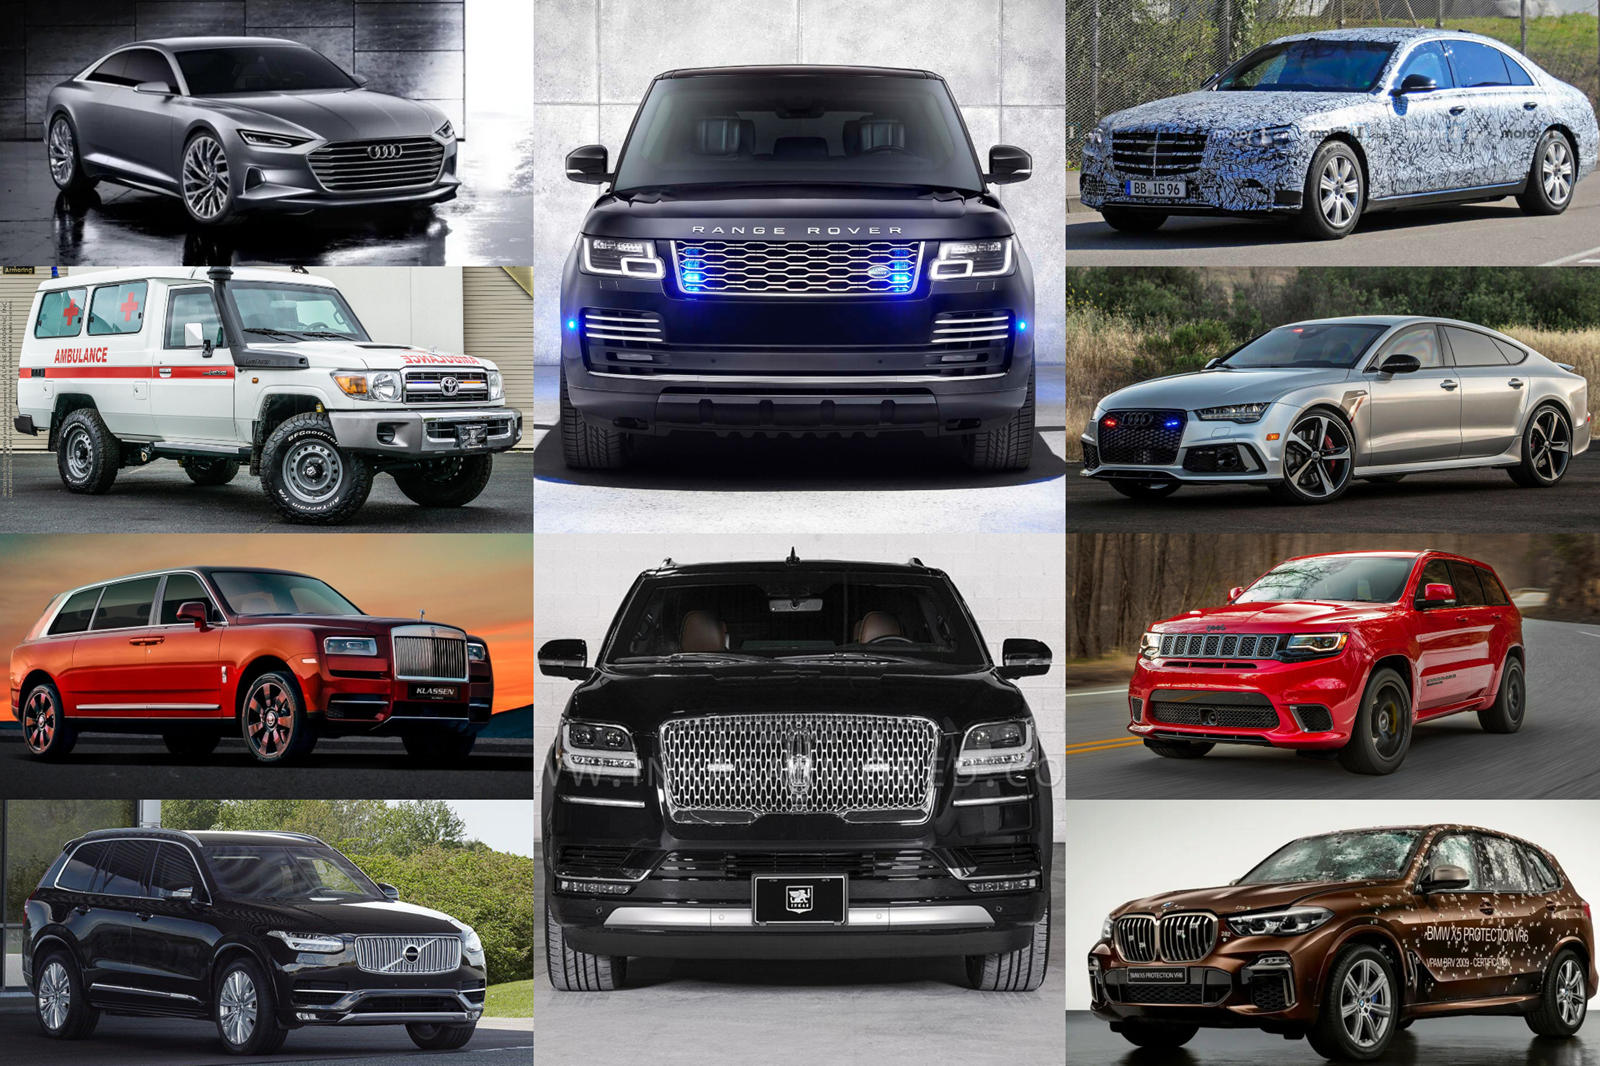 10 Armored Cars For VIPs